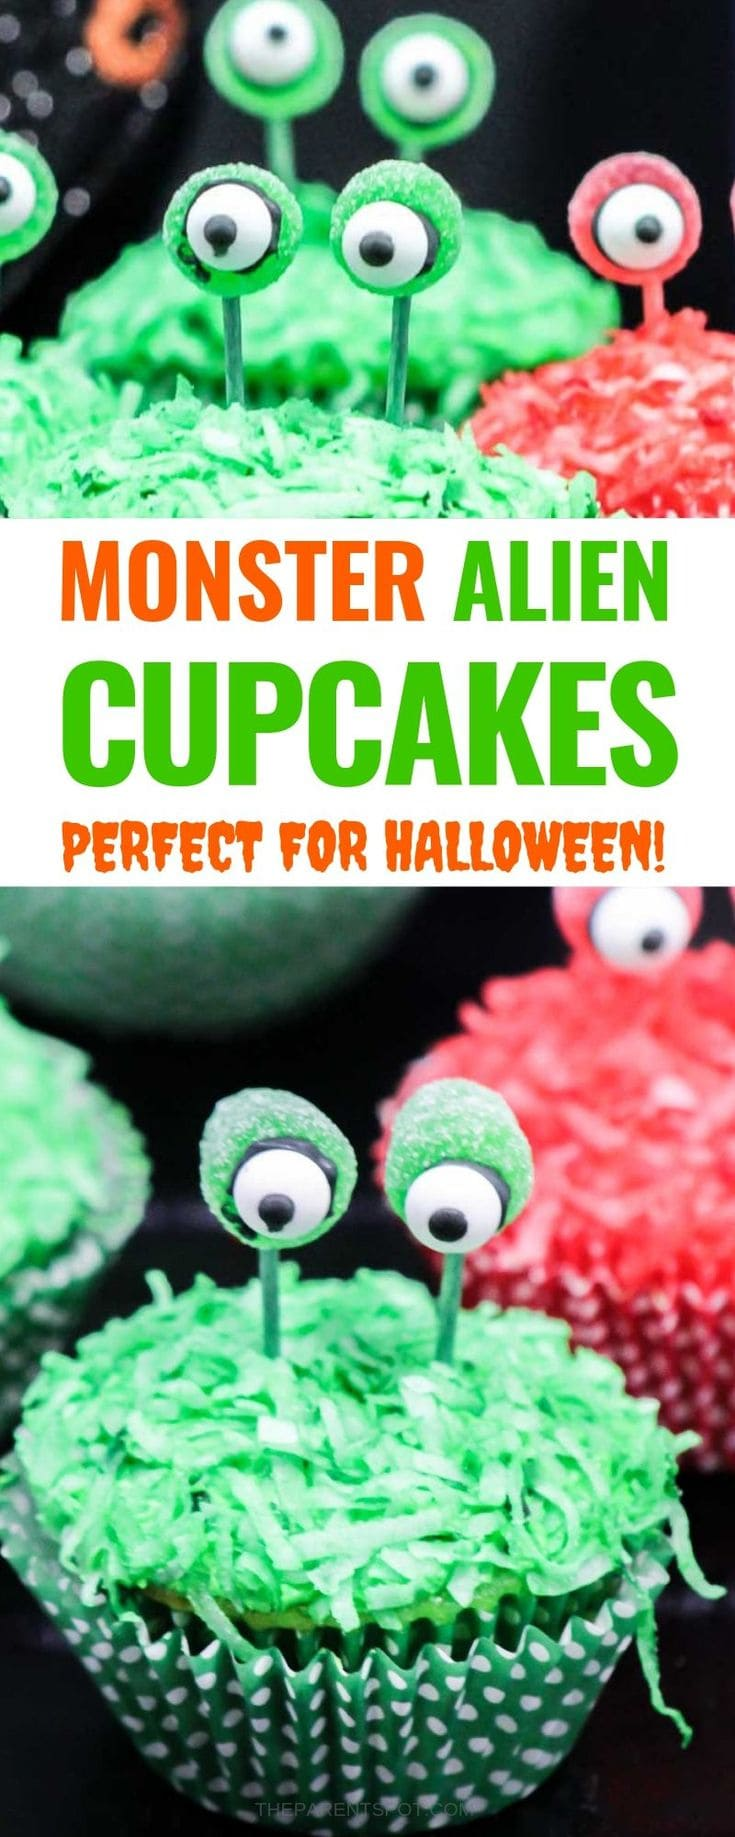 Monster alien cupcakes with eye stalks are fun for Halloween